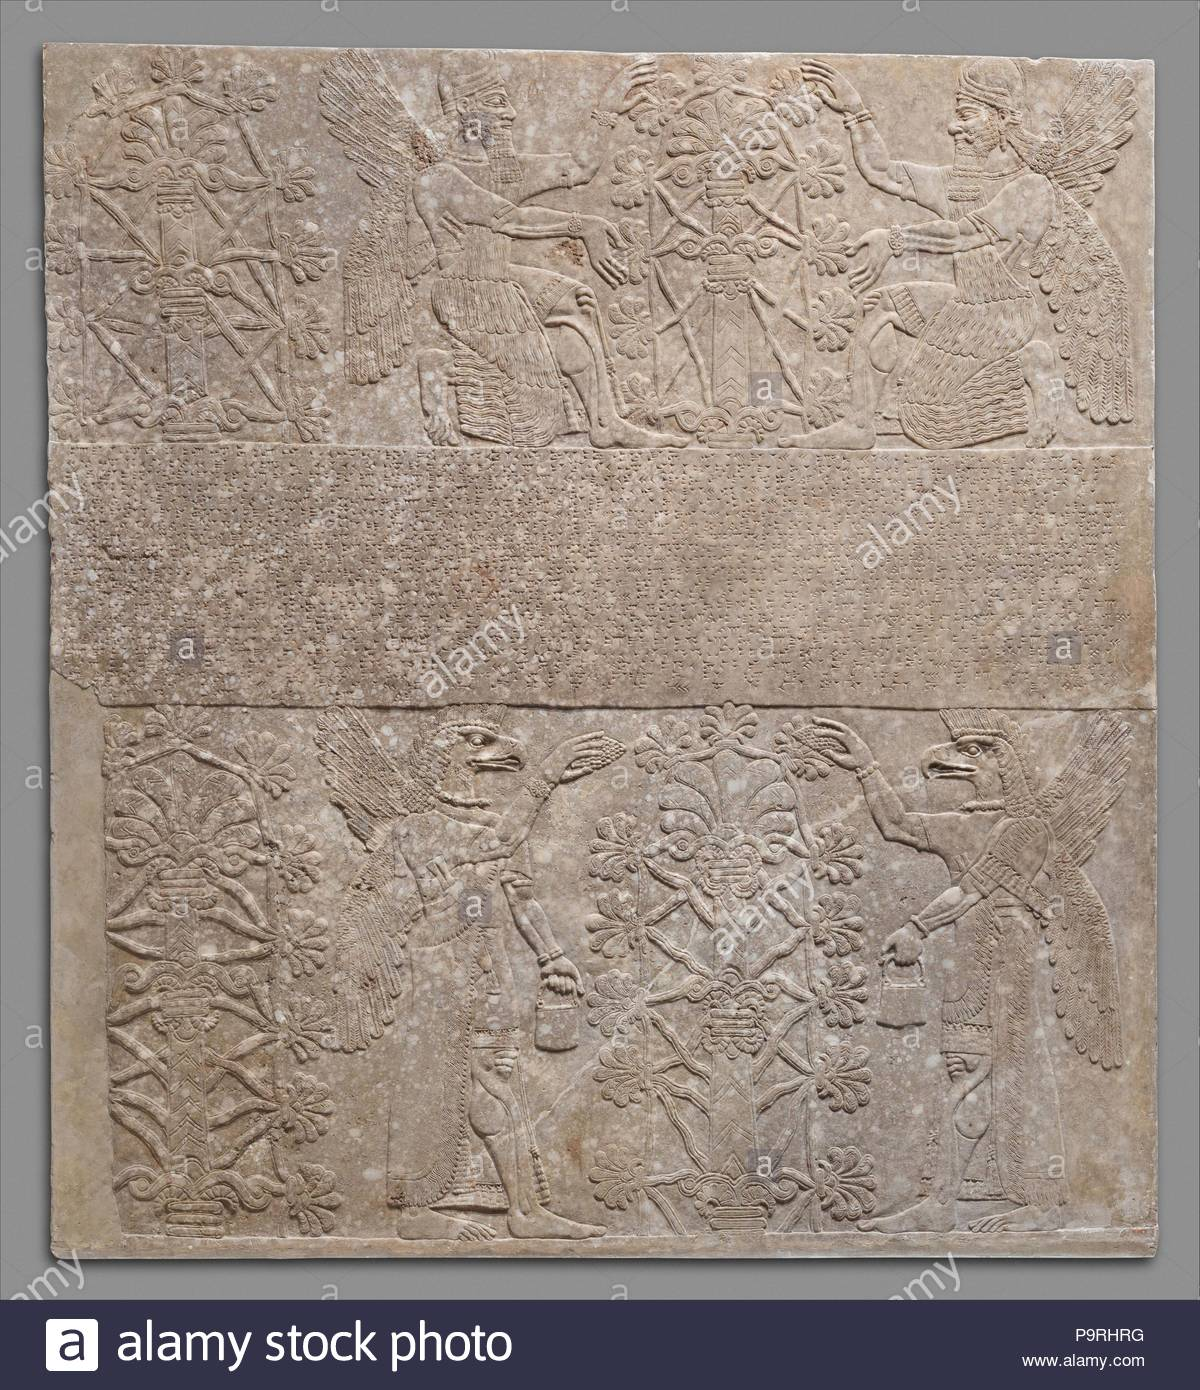 Relief panel, Neo-Assyrian, ca. 883–859 B.C., Mesopotamia, Nimrud (ancient Kalhu), Assyrian, Gypsum alabaster, 90 1/2 x 84 1/2 x 6 in. (229.9 x 214.6 x 15.2 cm), Stone-Reliefs-Inscribed, In most rooms of the Northwest Palace at Nimrud (ancient Kalhu), the reliefs showing magical figures had a single, overlifesize pictorial register, with the inscription in the center cutting across the imagery. - Stock Image